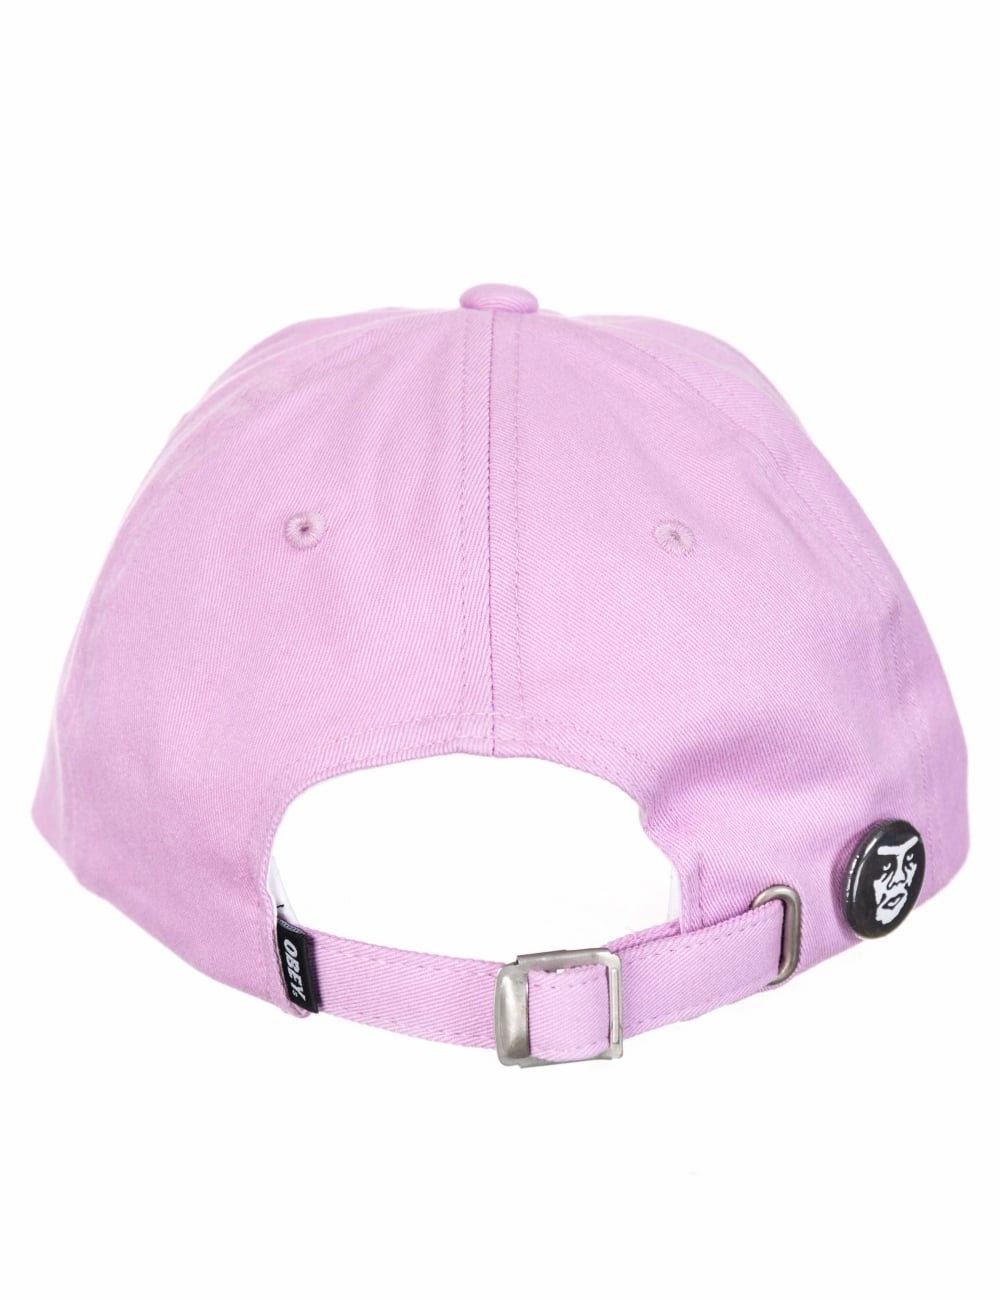 Obey Clothing Jumble Bar III 6 Panel Hat - Pale Purple - Accessories ... 9e253cb1a50d